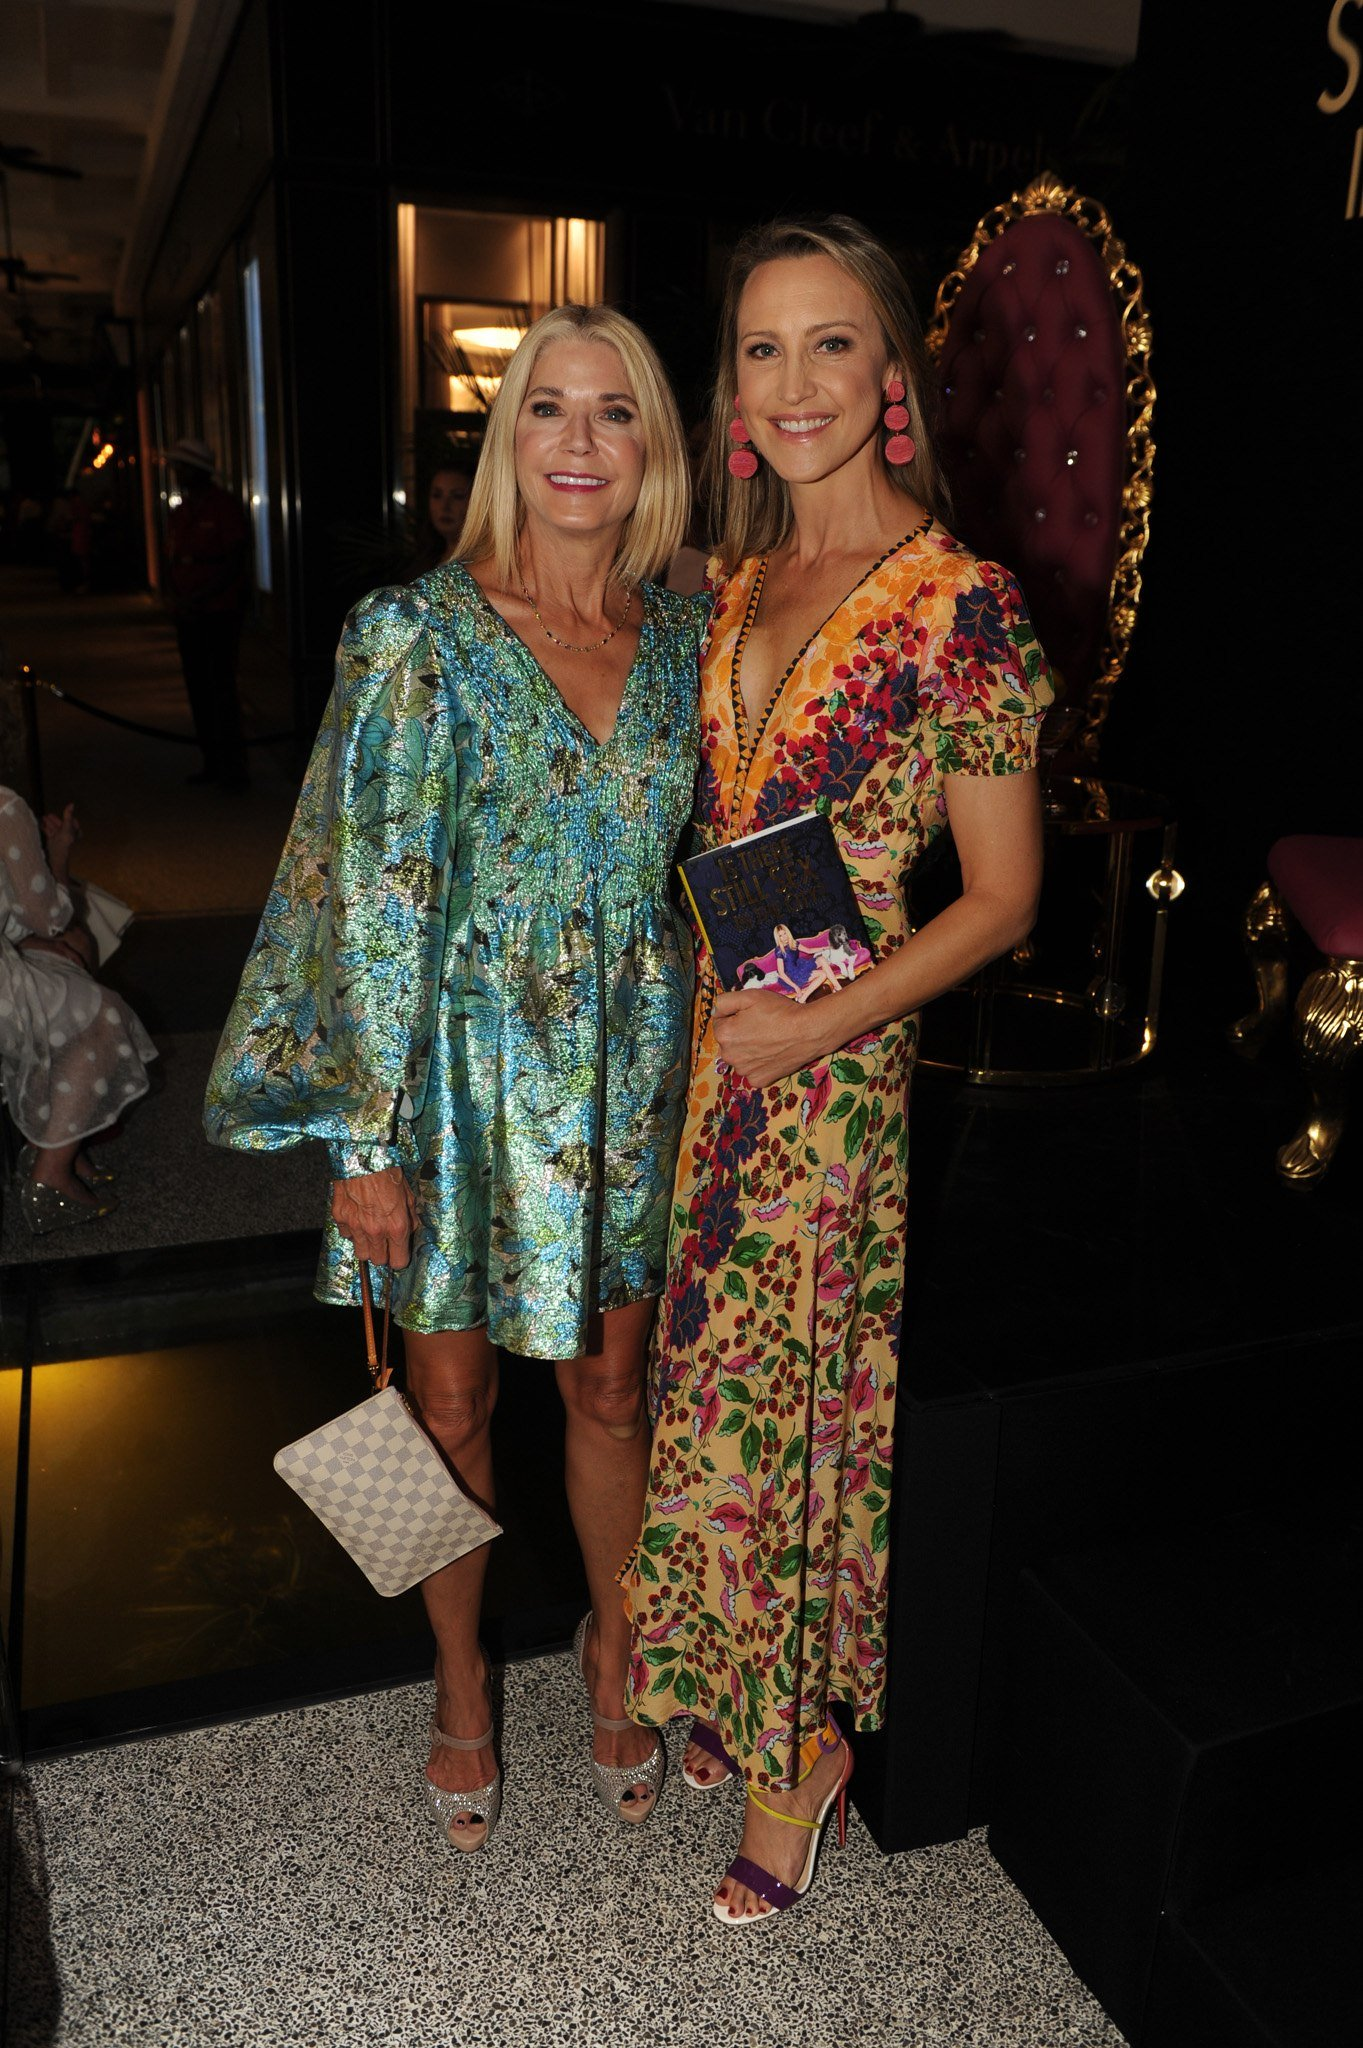 Candace Bushnell and Kinga Lampert